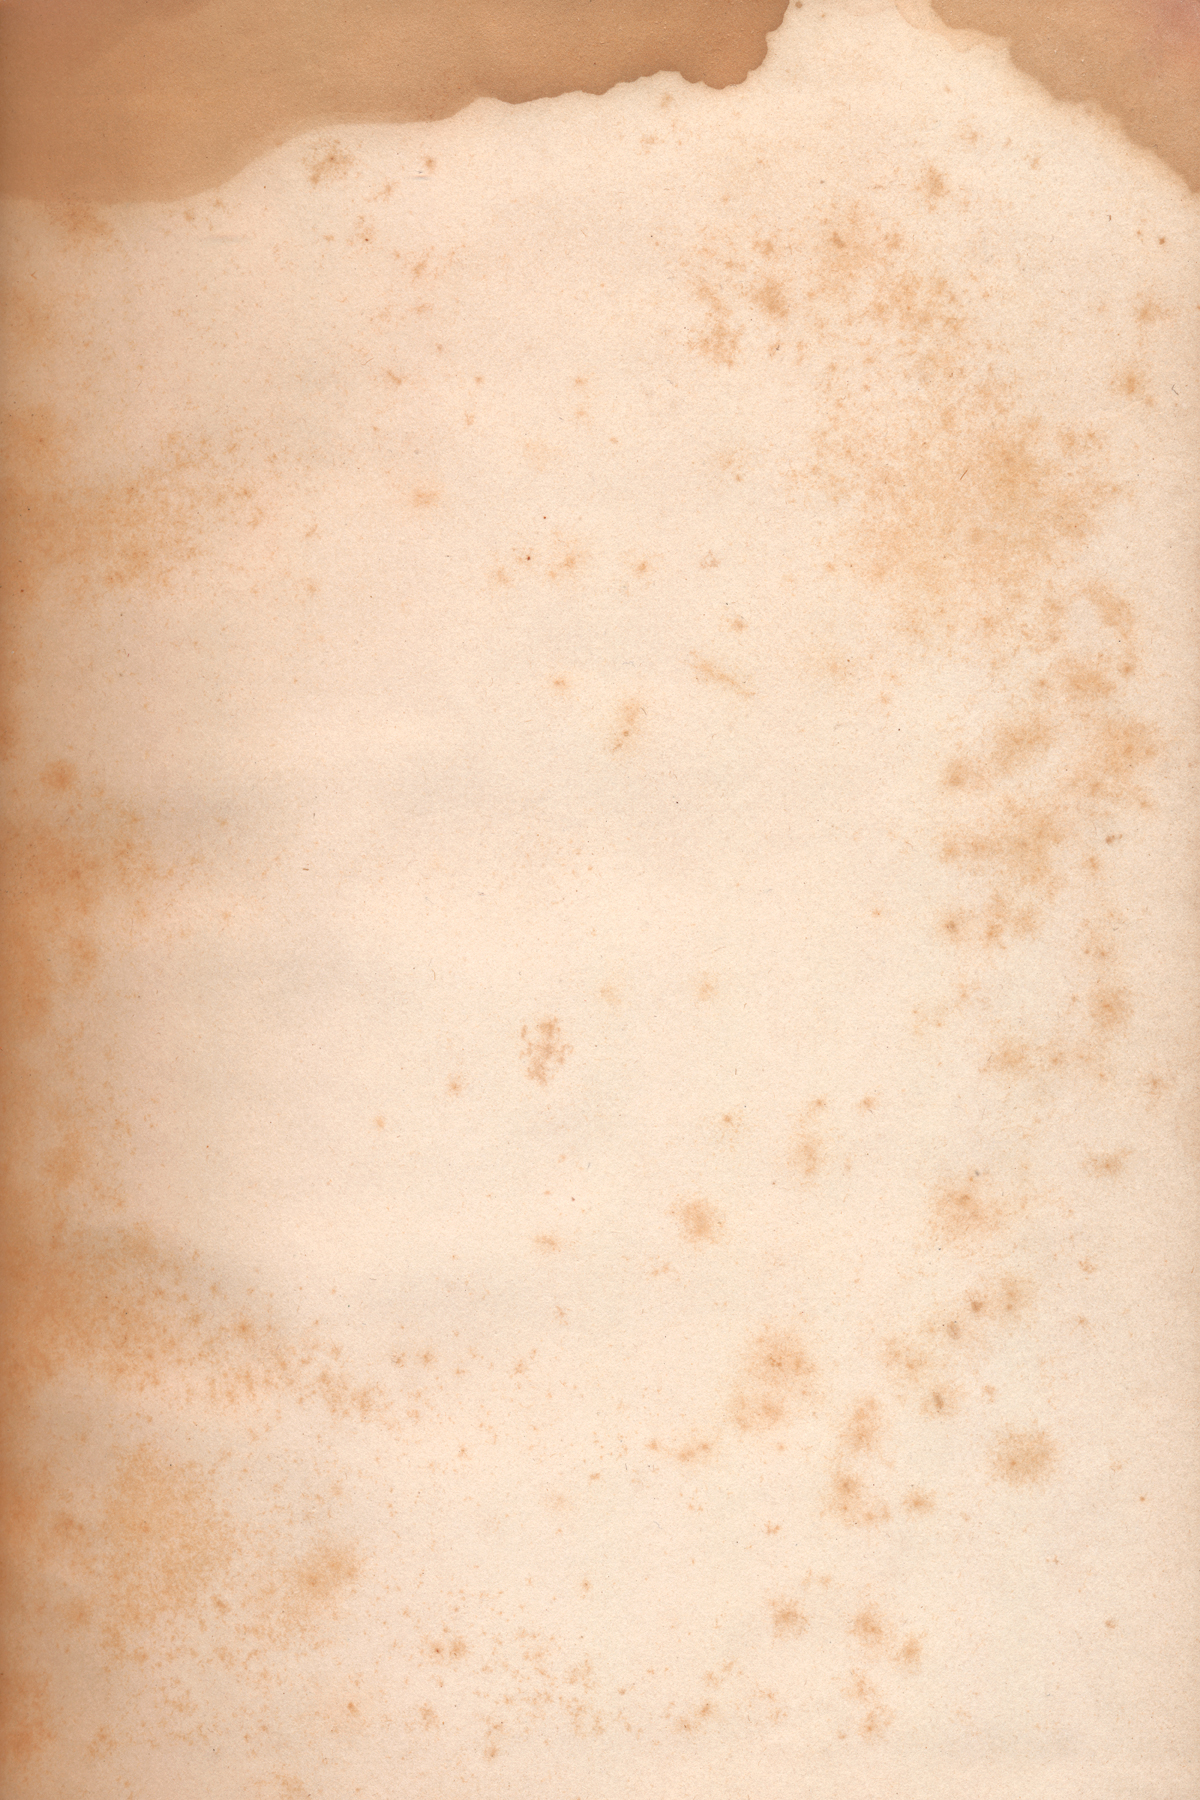 Paper Texture - Foxing Stains, Age, Scrapbooking, Space, Soiled, HQ Photo